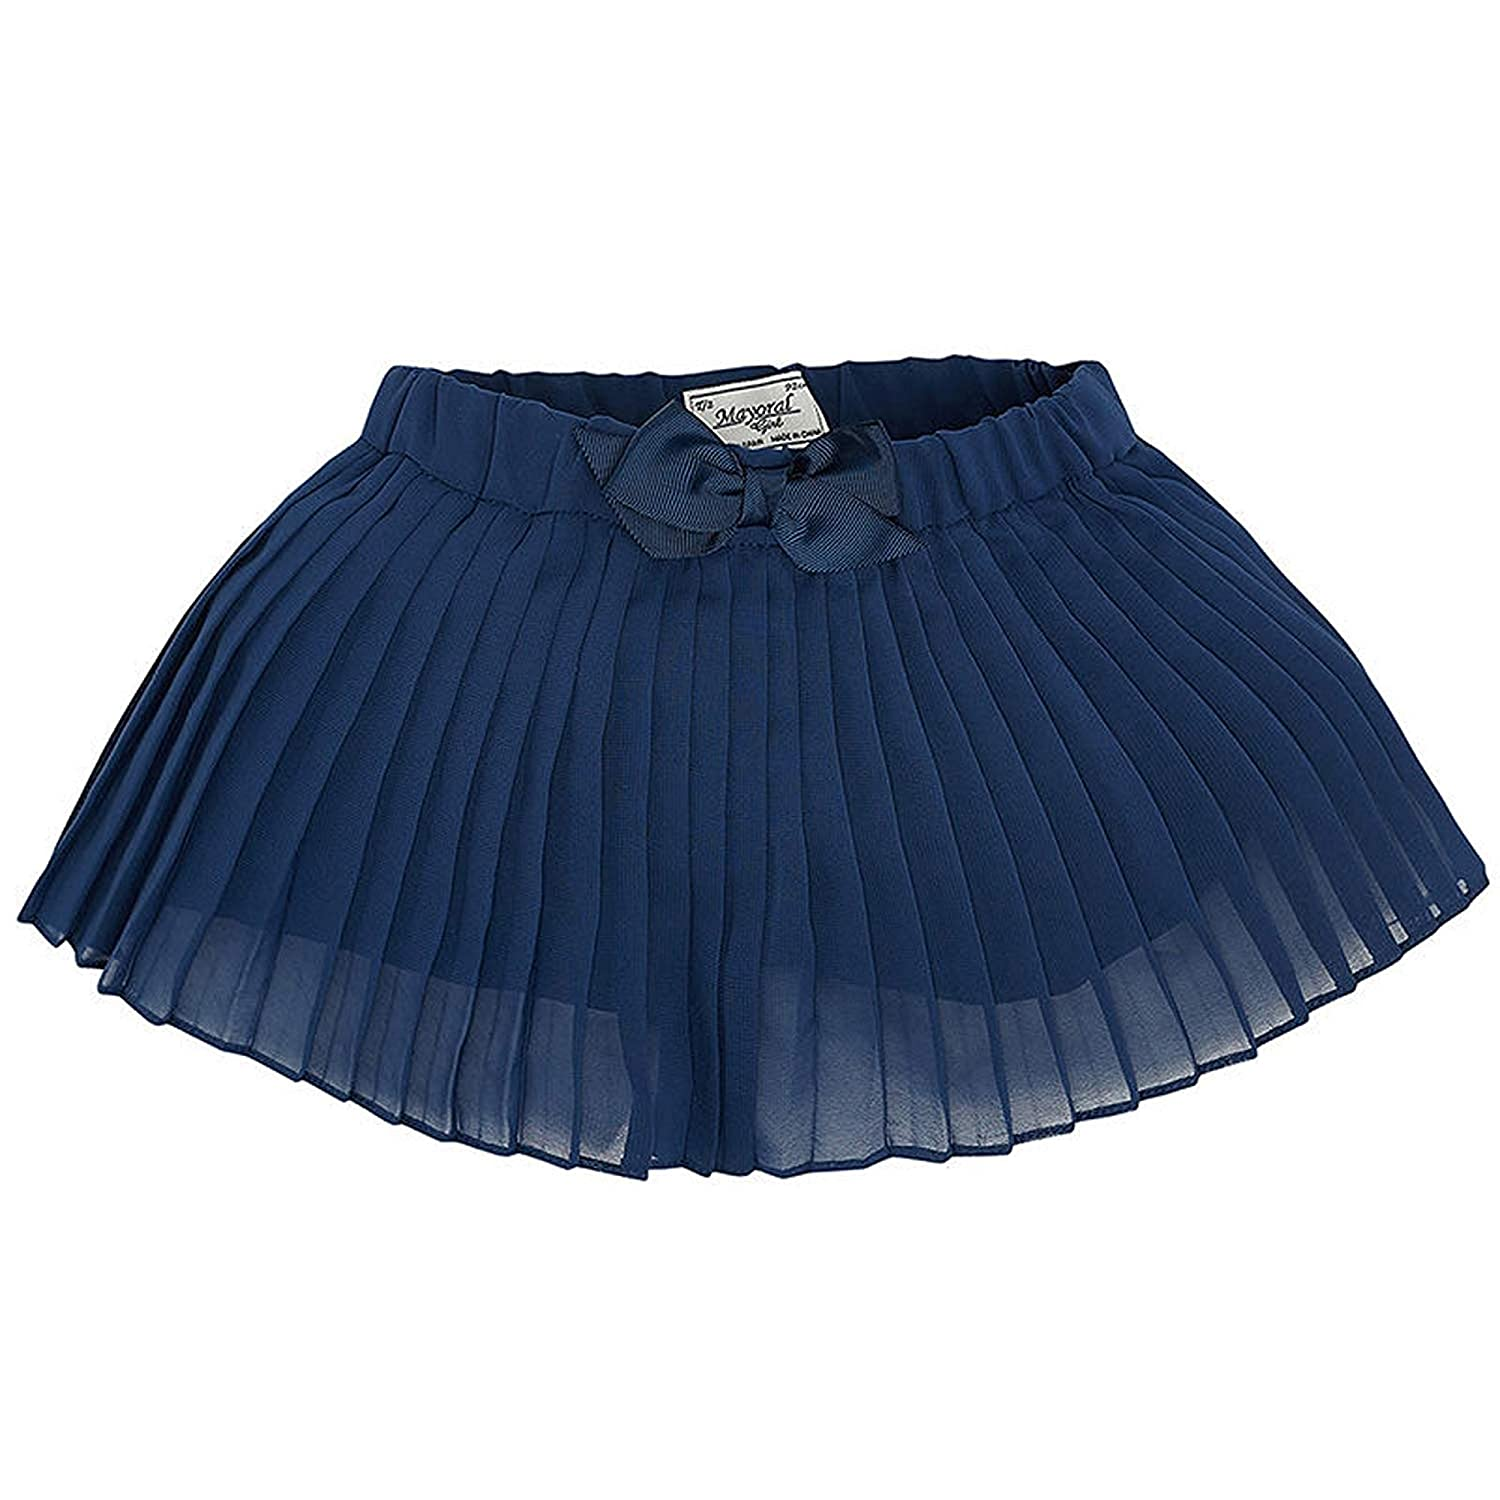 Mayoral Chic Little Girls 2-9 Navy-Blue Tiered Chiffon Skort